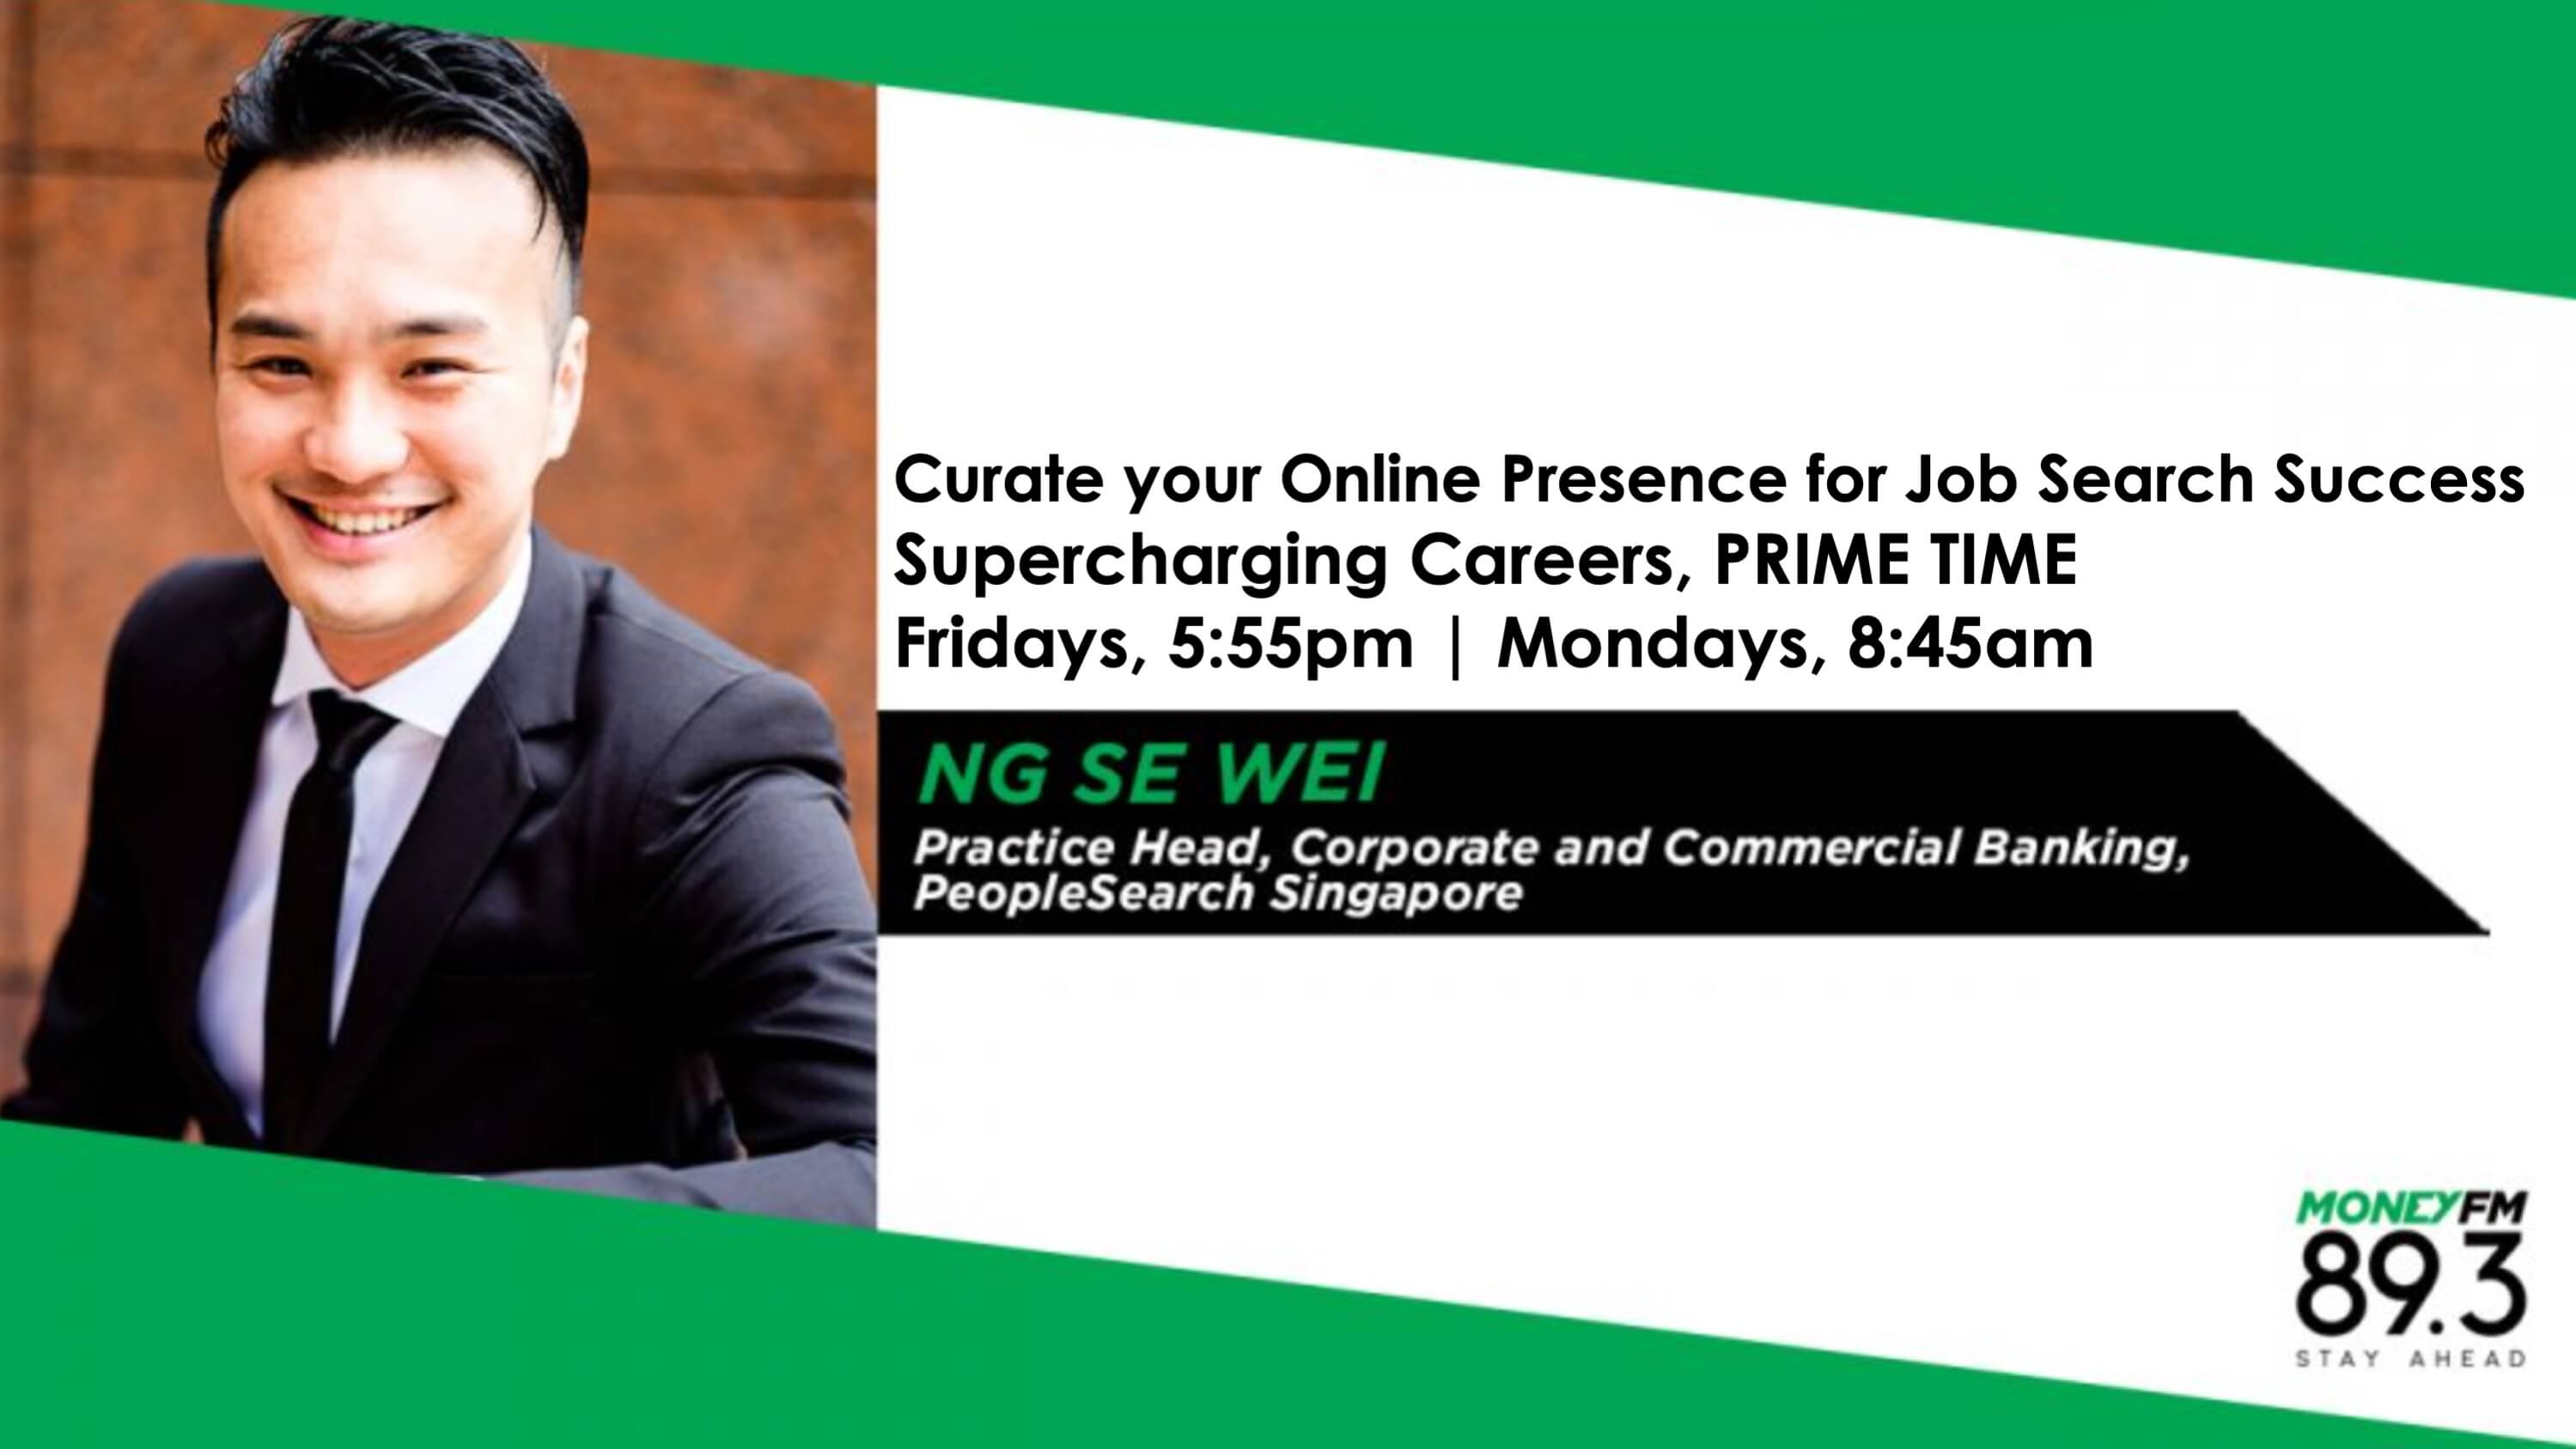 Asian man in a black suit on radio station, MONEY FM 89.3's Supercharging Careers banner